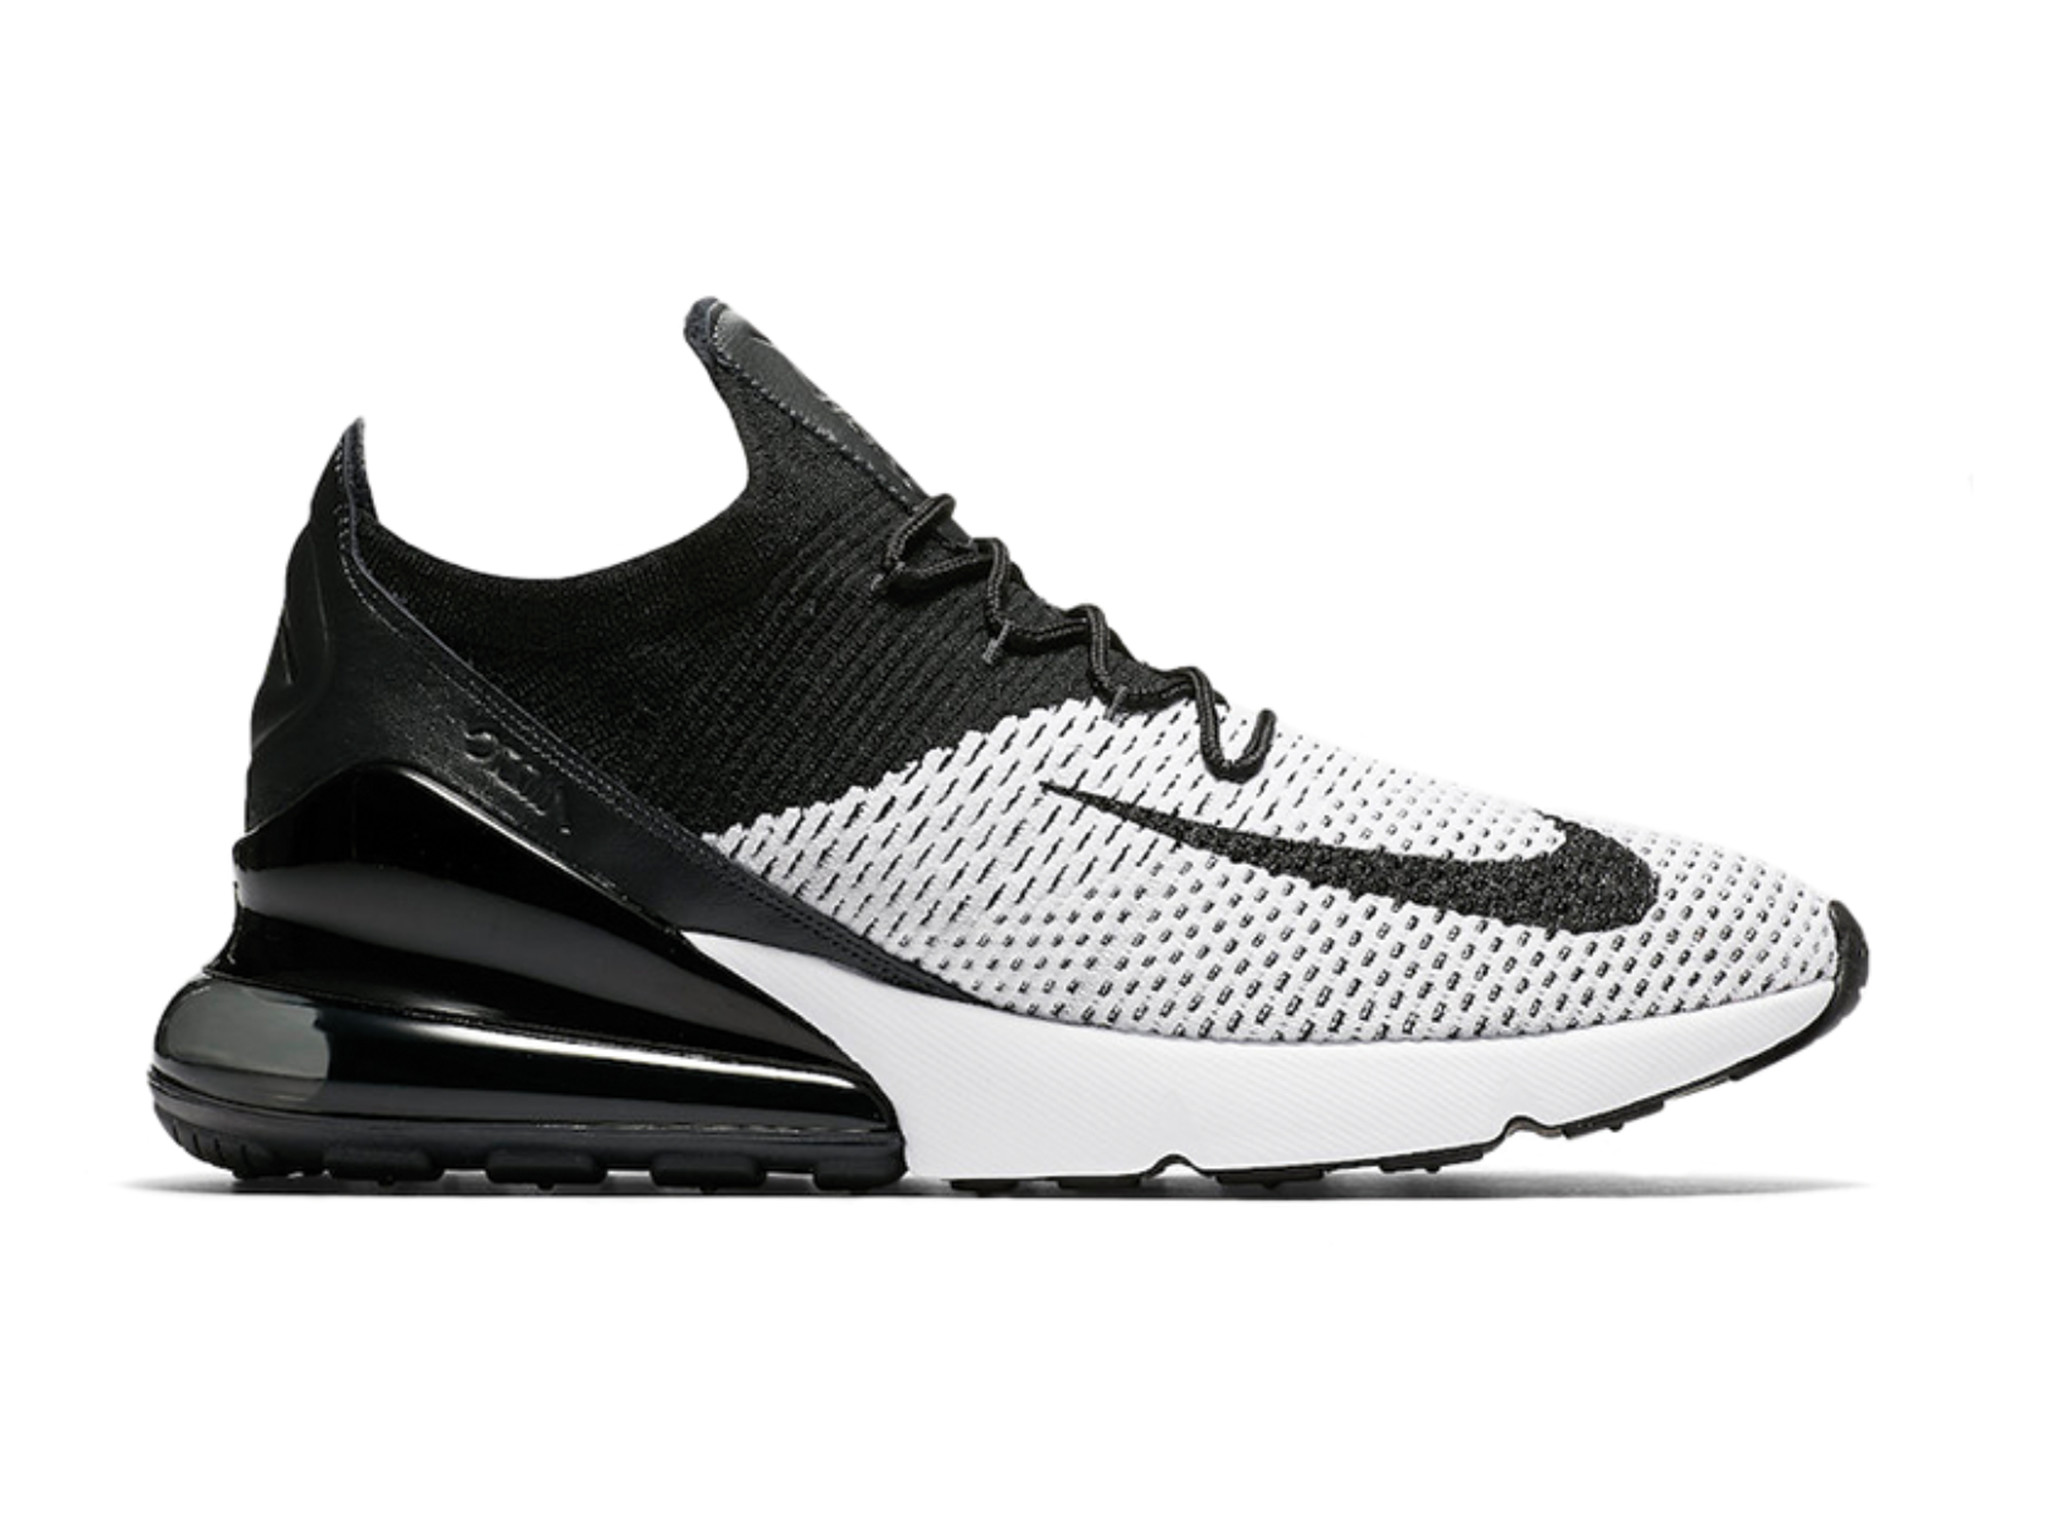 bb8733599075a Air Max 270 Flyknit White Black Anthracite AO1023 100 will be added to your  shopping card